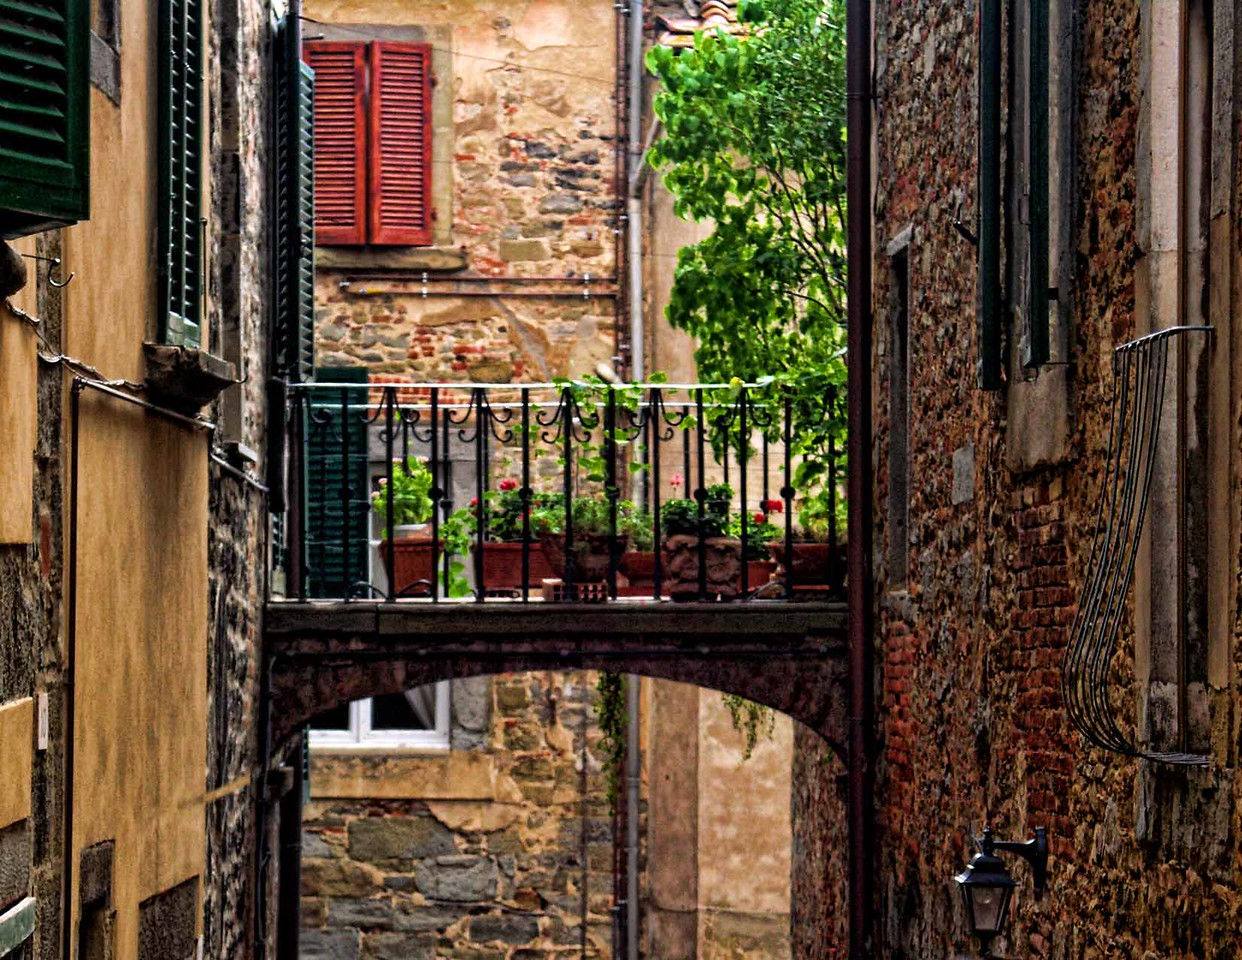 Bridge between Buildings, Cortona, Tuscany